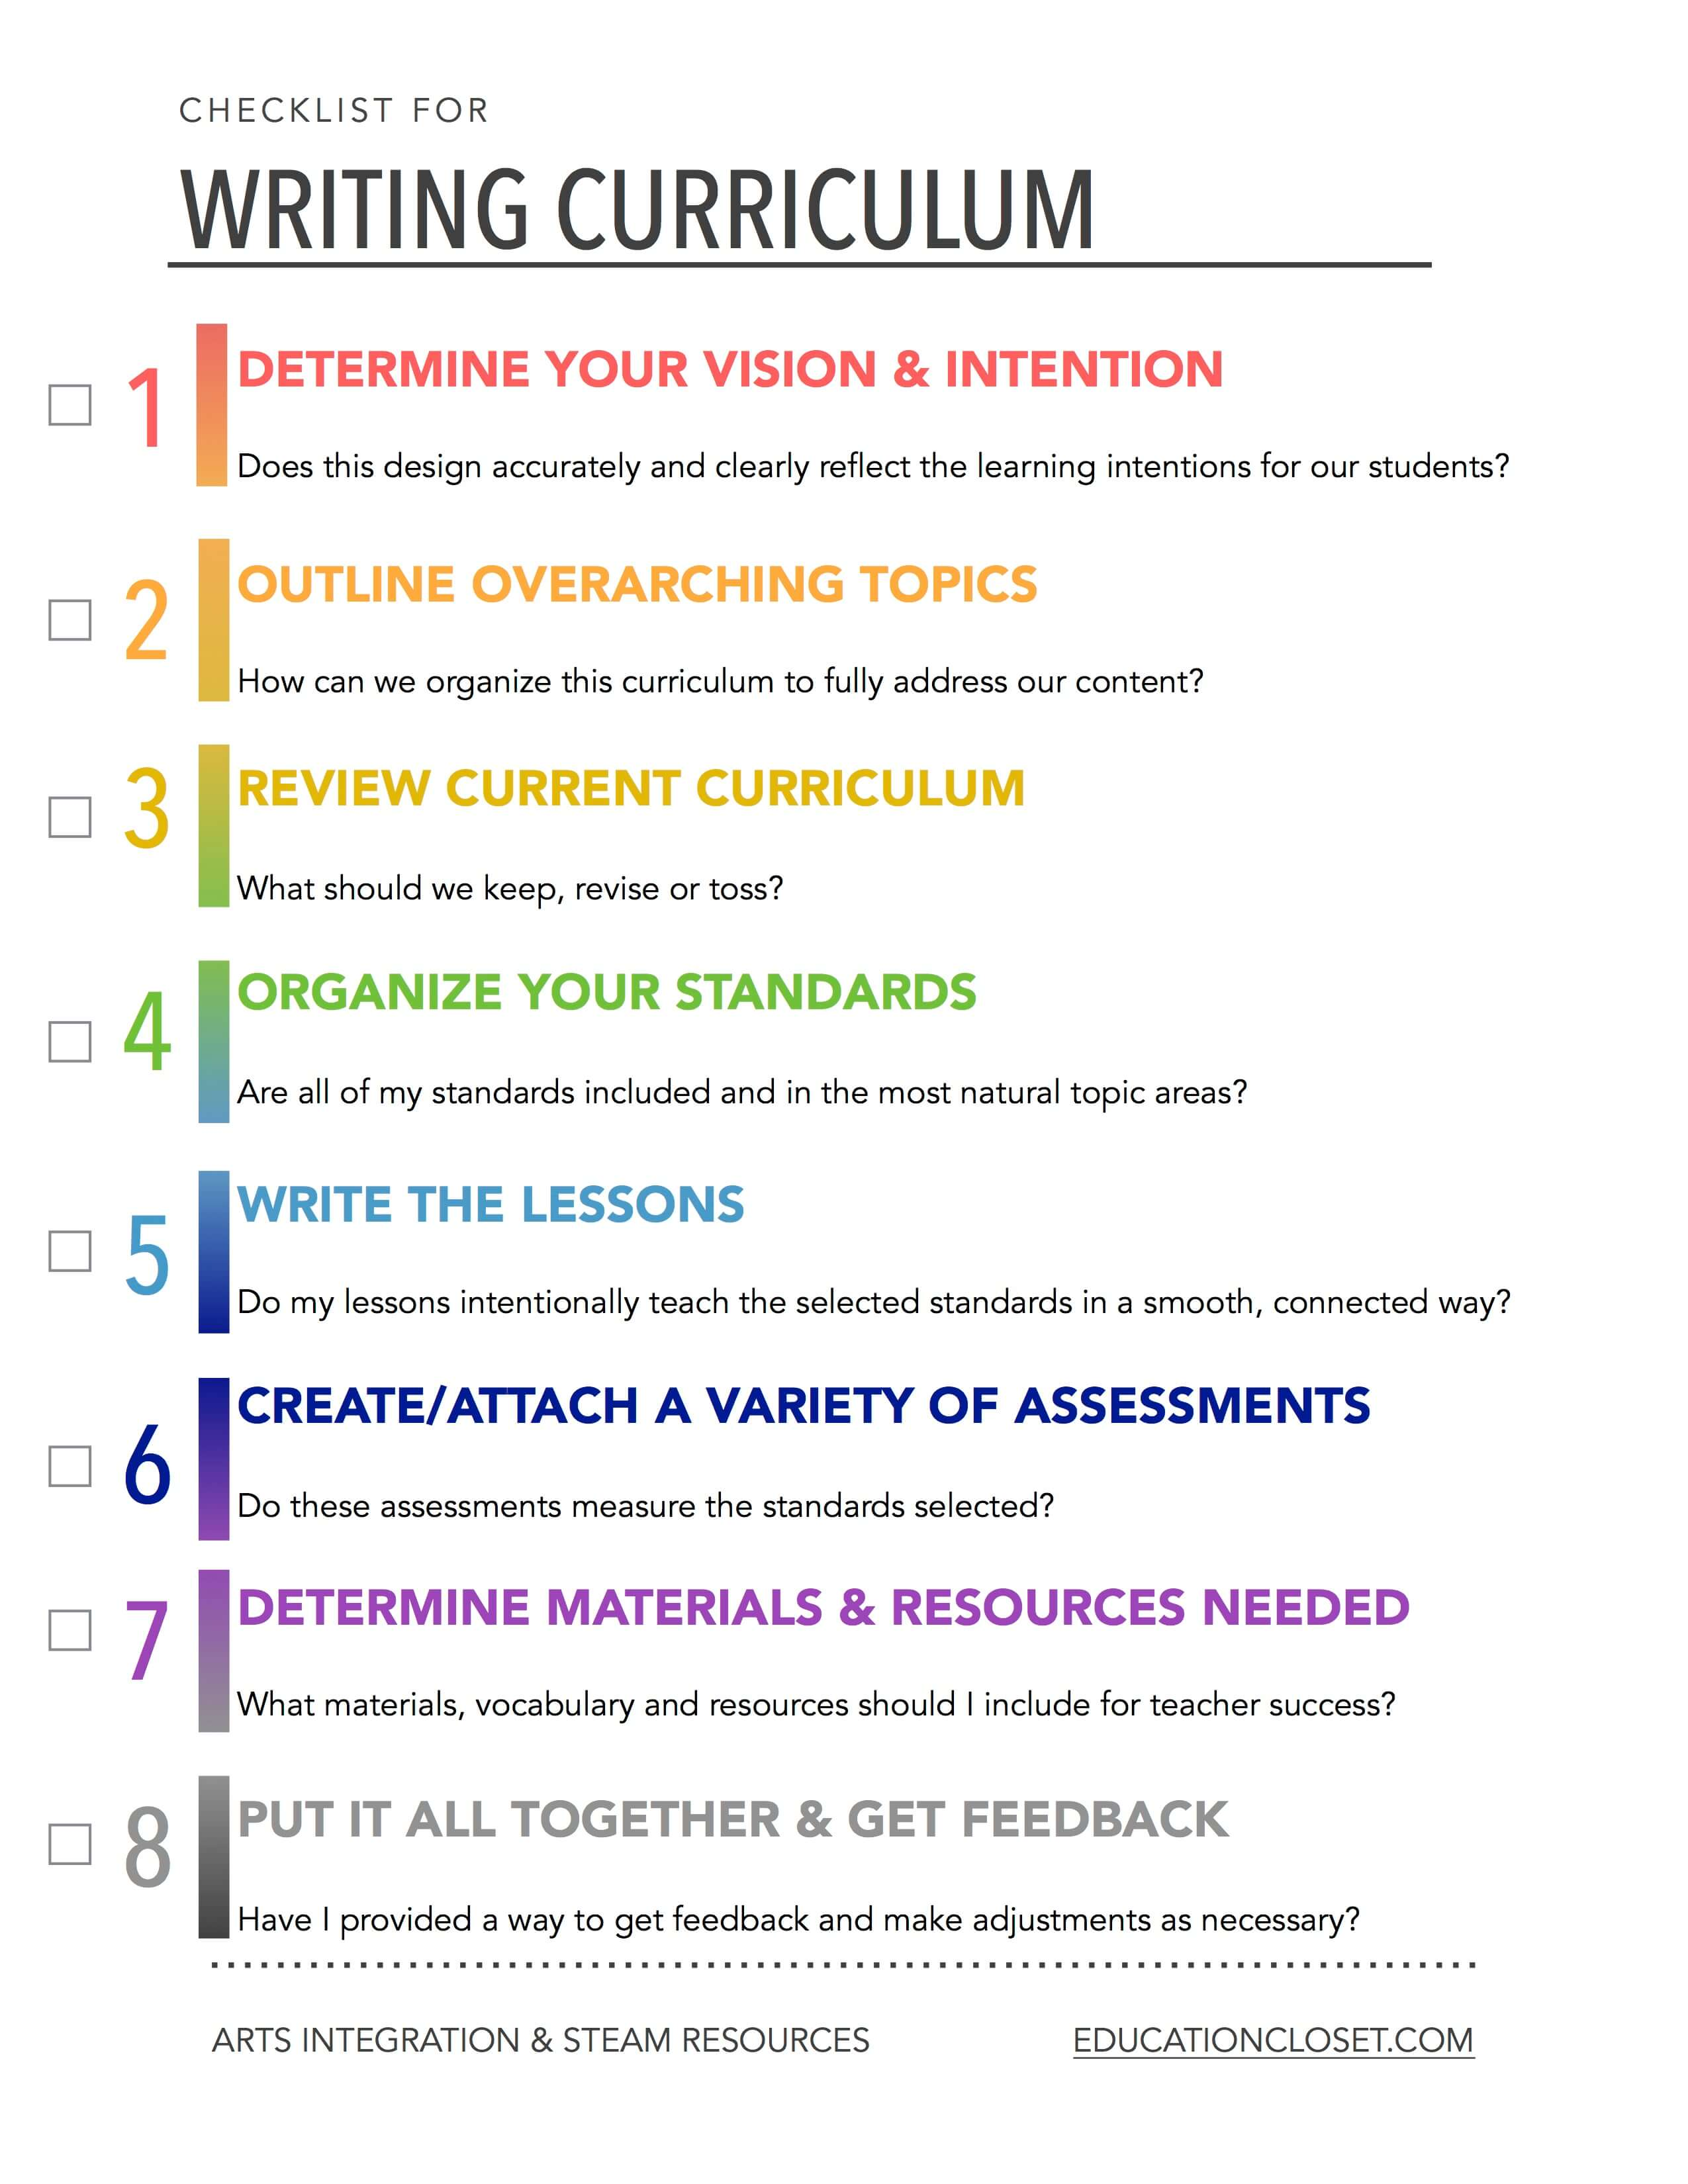 How to Write a Curriculum from Start to Finish